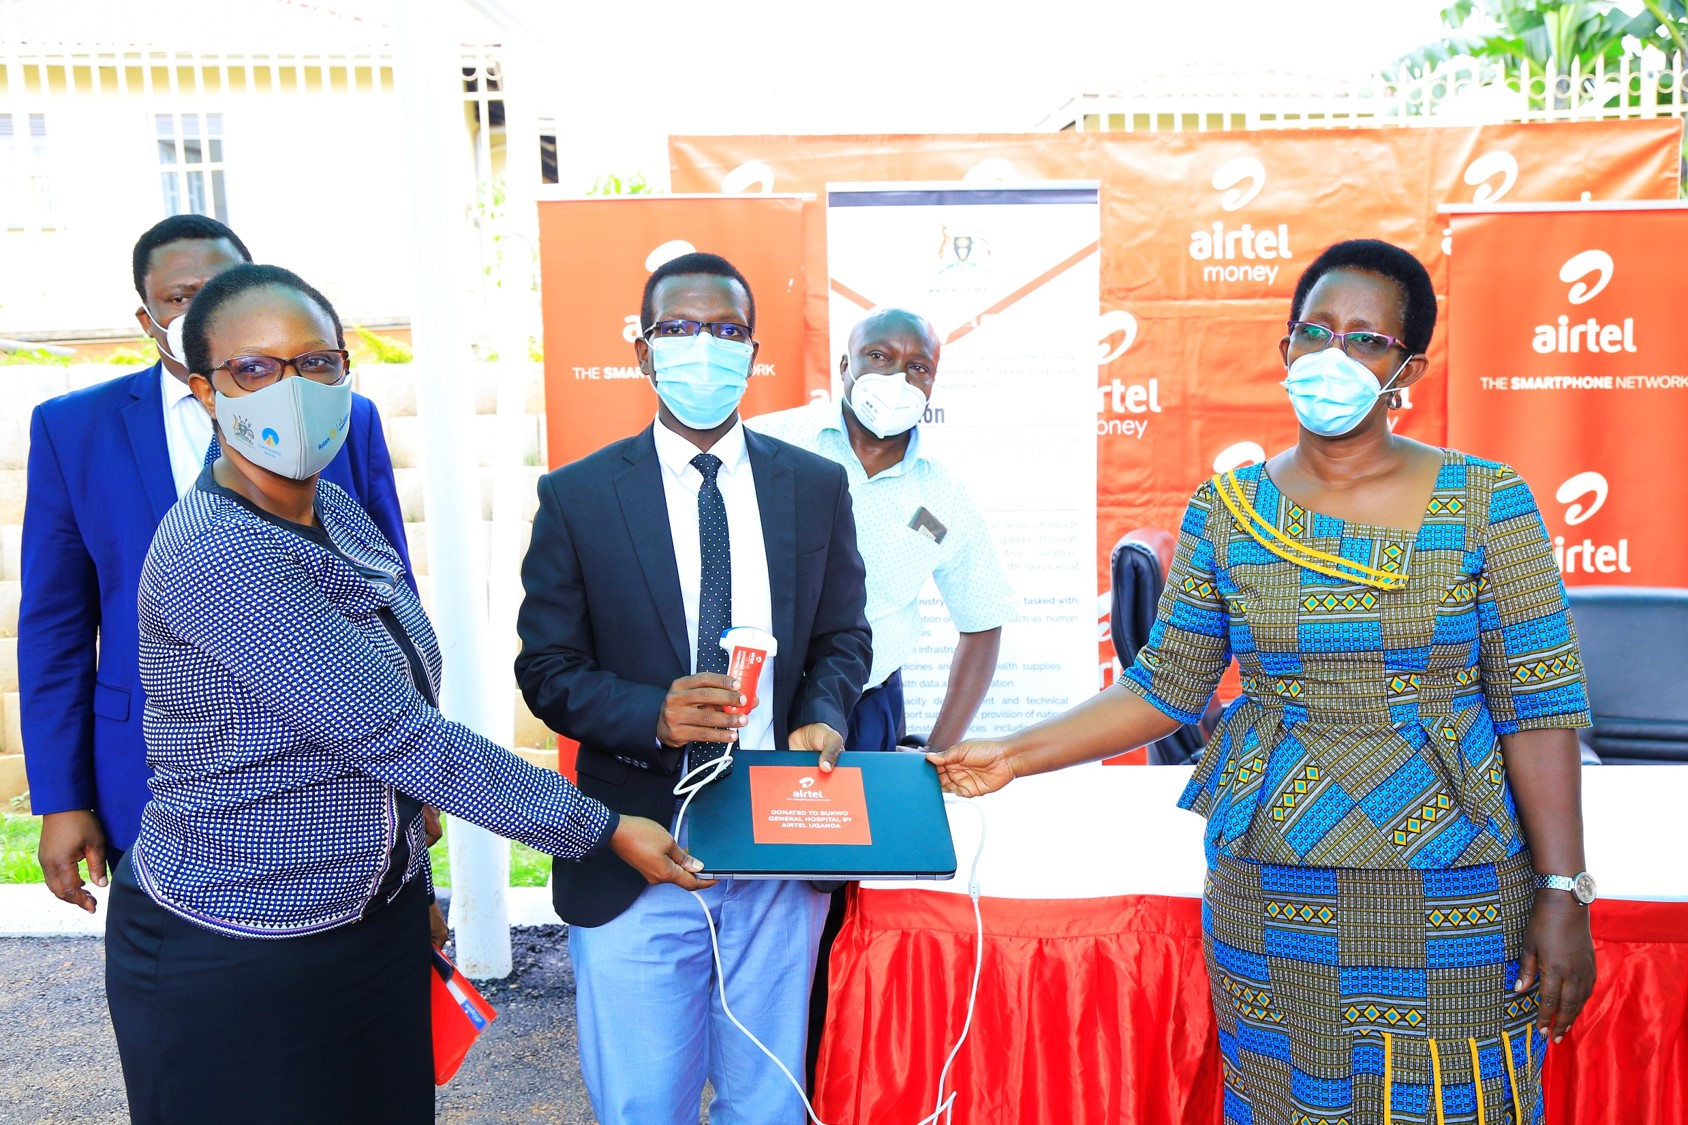 Airtel Uganda HR Director Flavia Ntambi joins M-Scan's Menyo Innocent to hand over the Ultrasound device to Ministry of Health P.S Ms. Diana Atwine (PHOTO/Courtesy).